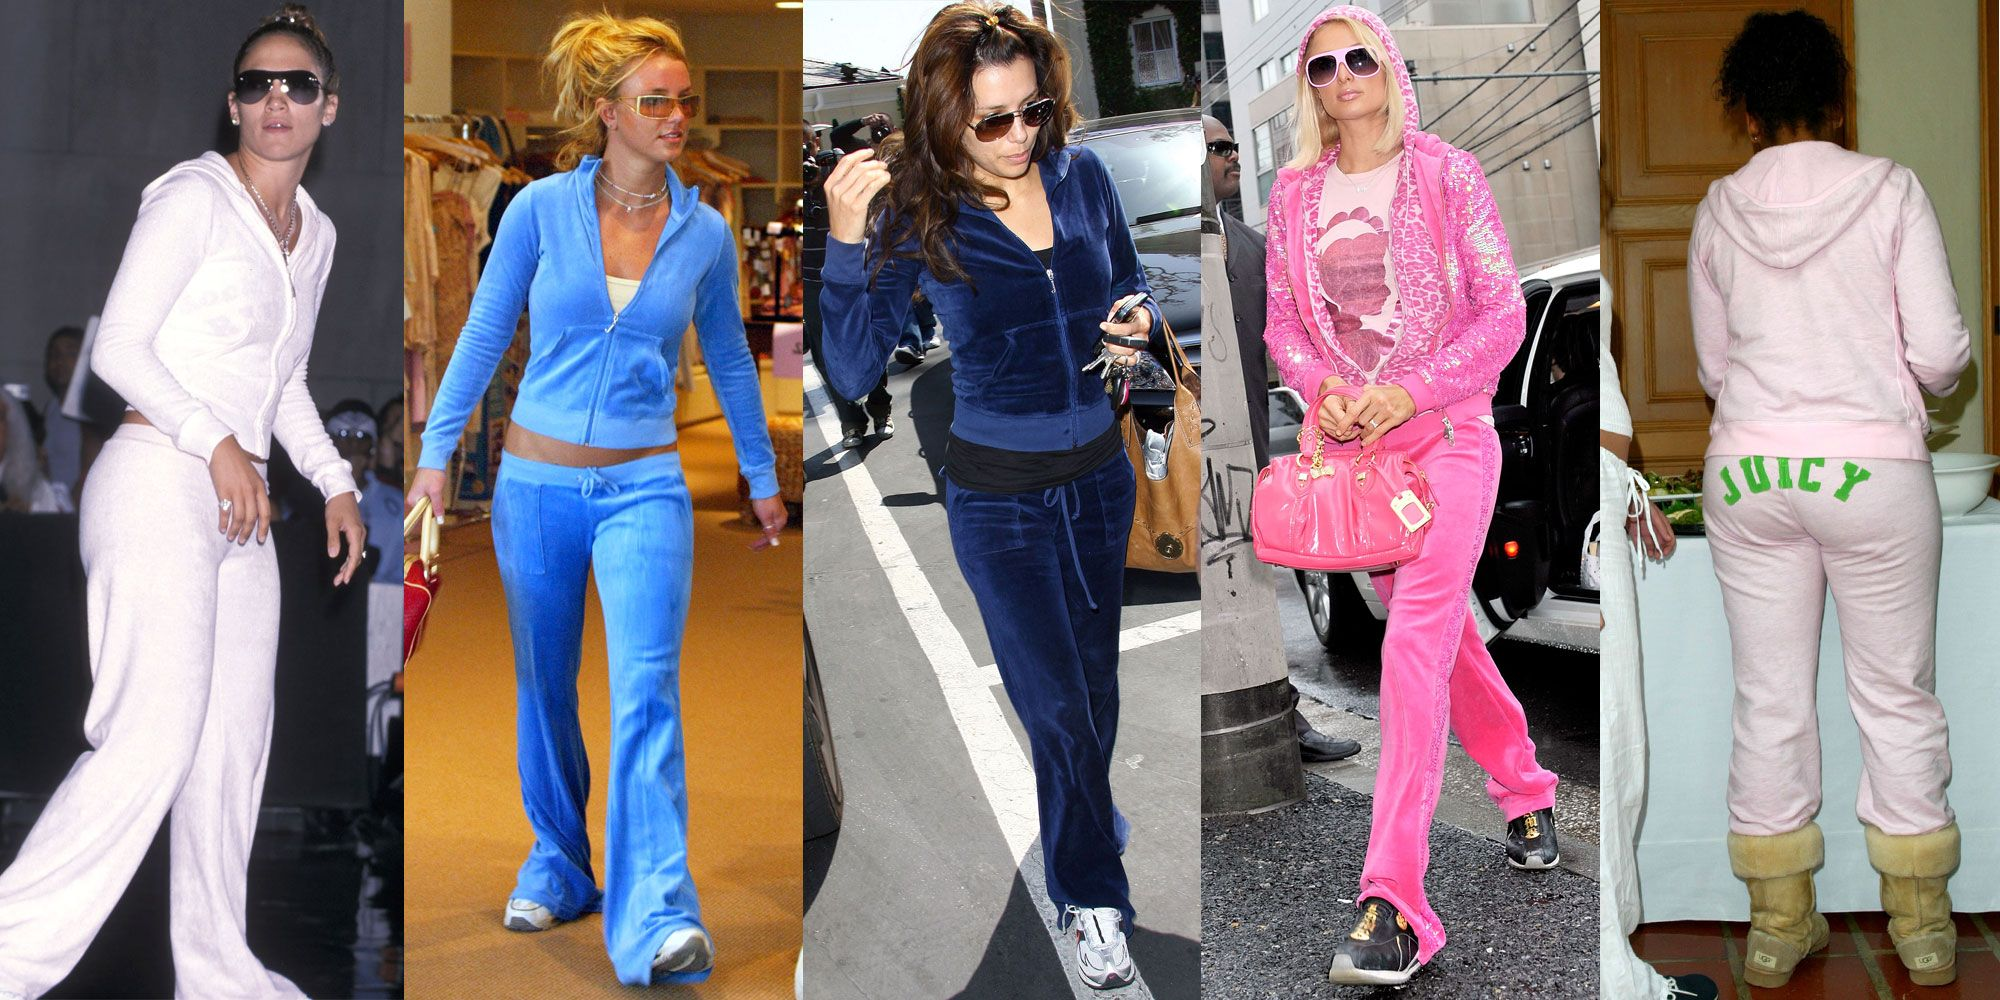 7375c53be2c Worst Fashion Trends of All Time - The Worst Fashion Trends and Styles of  Every Decade